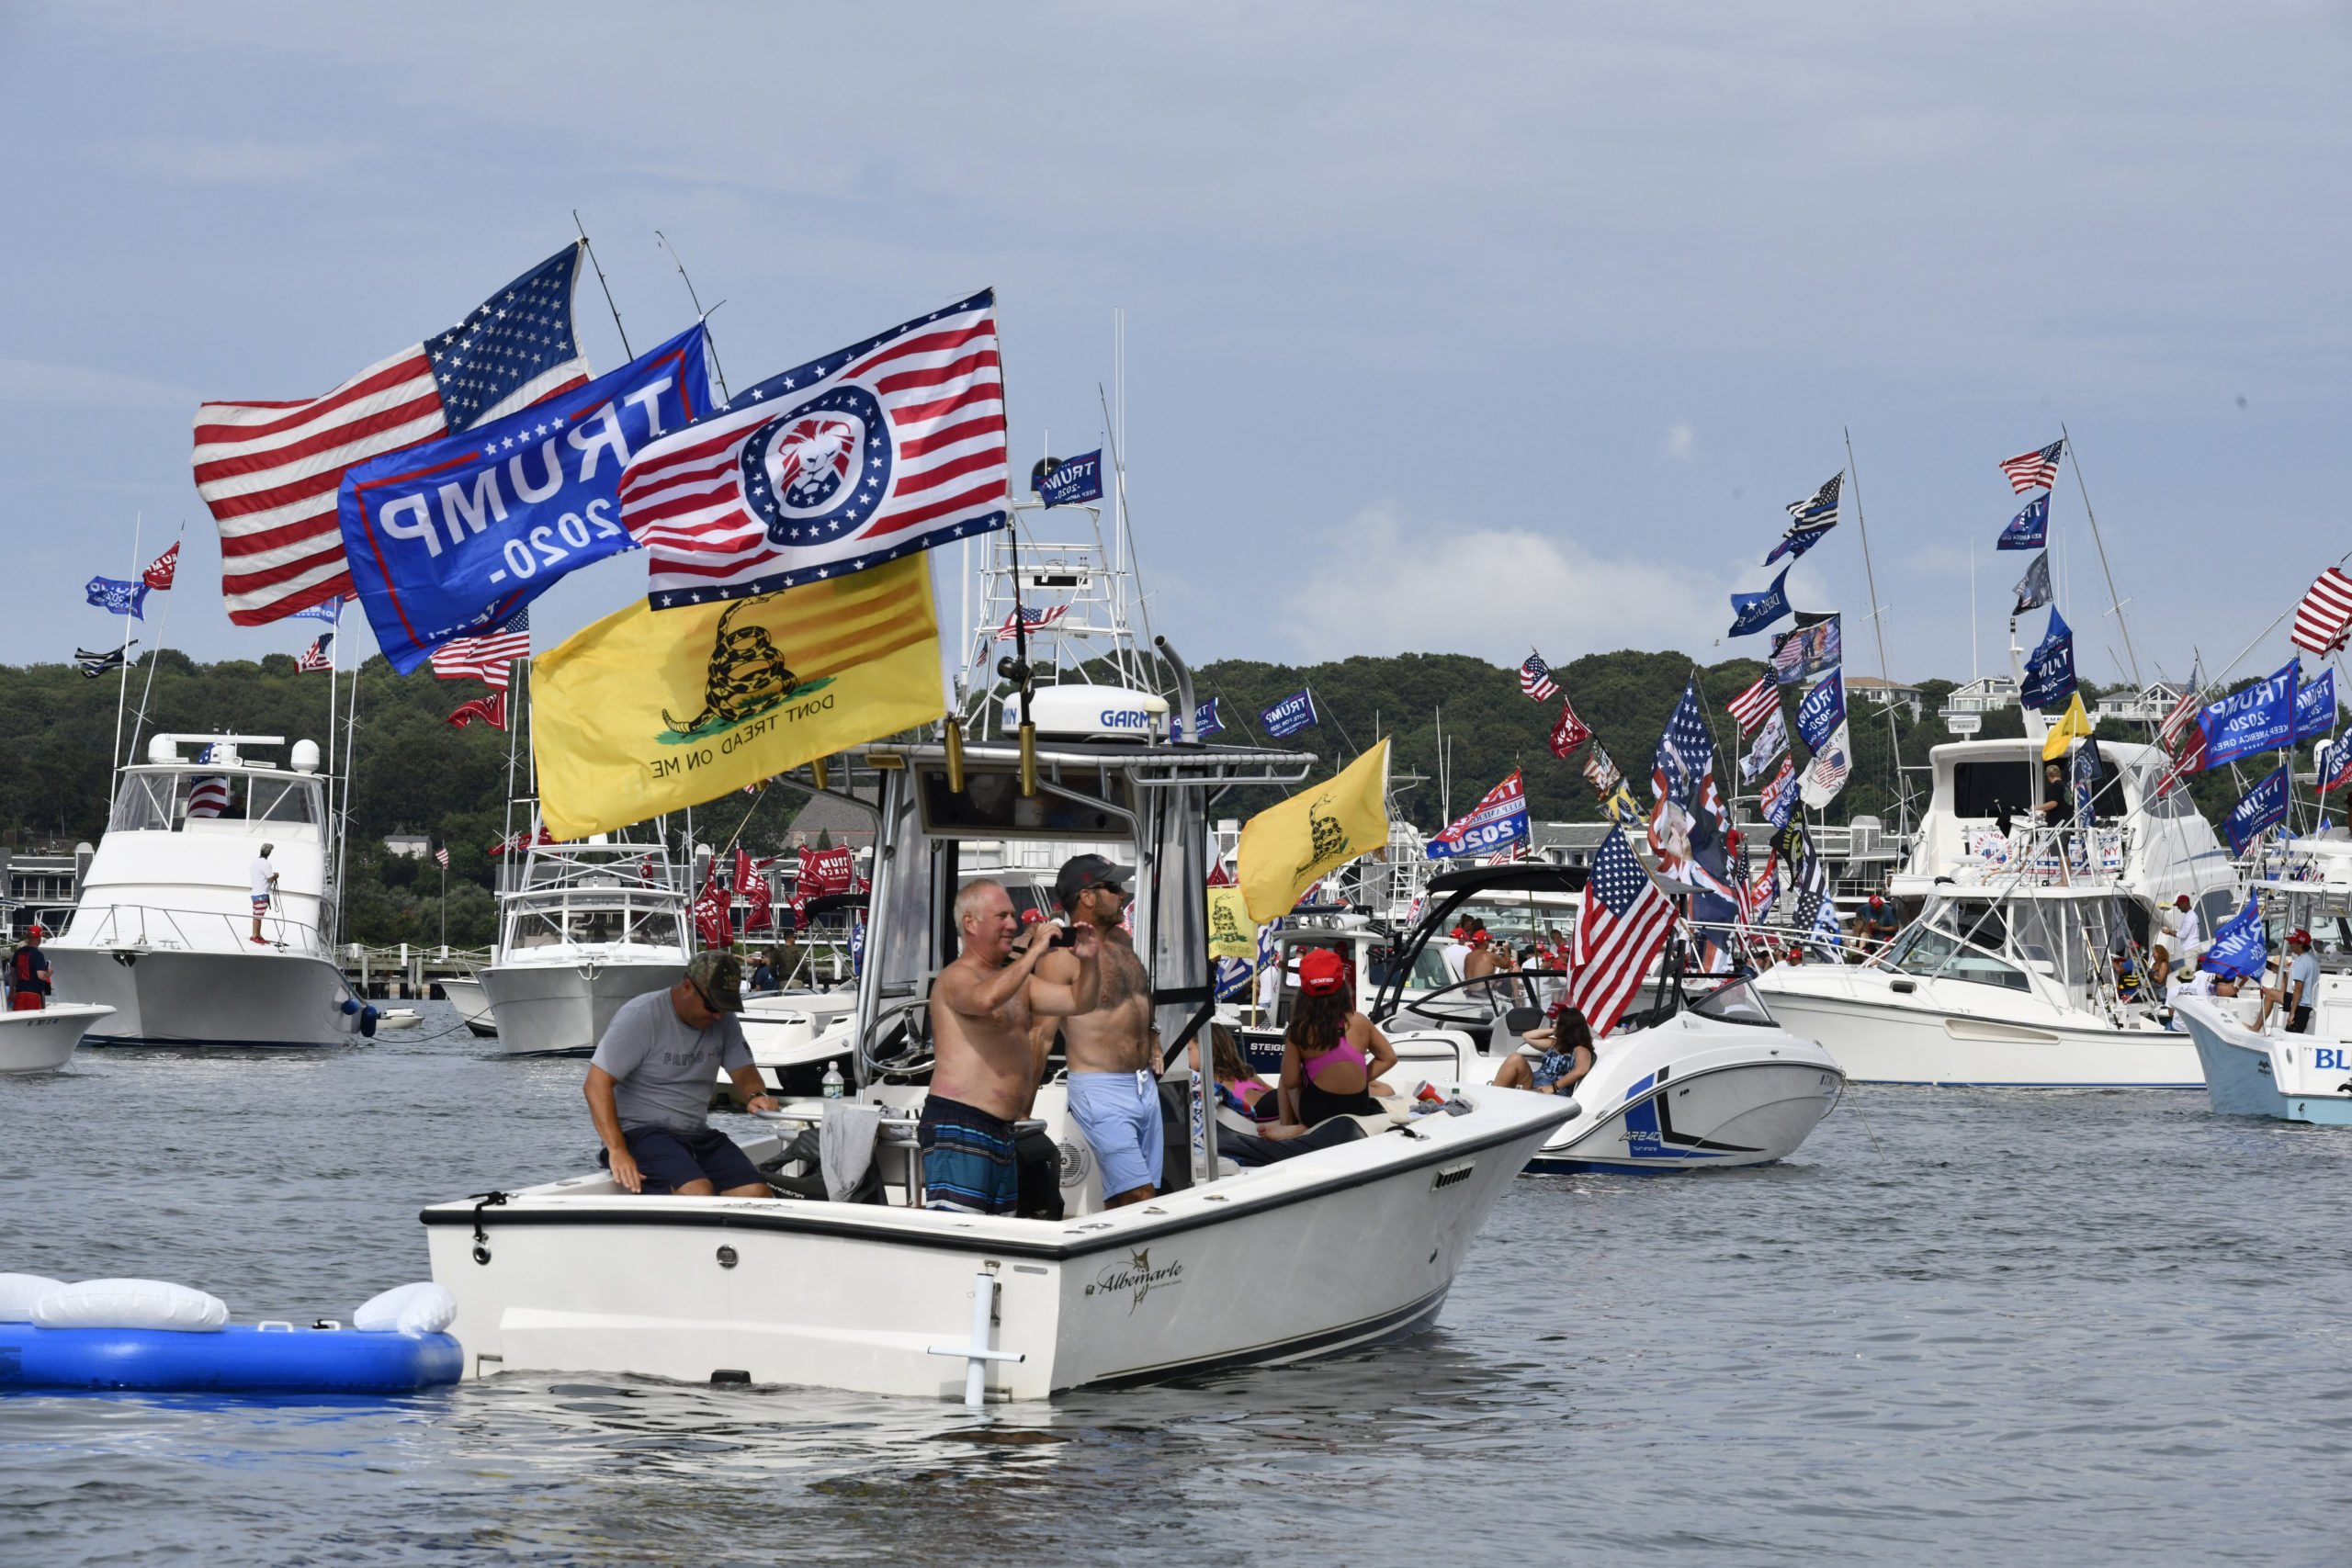 Supporters of President Donald Trump gather in Fort Pond Bay on Friday afternoon.